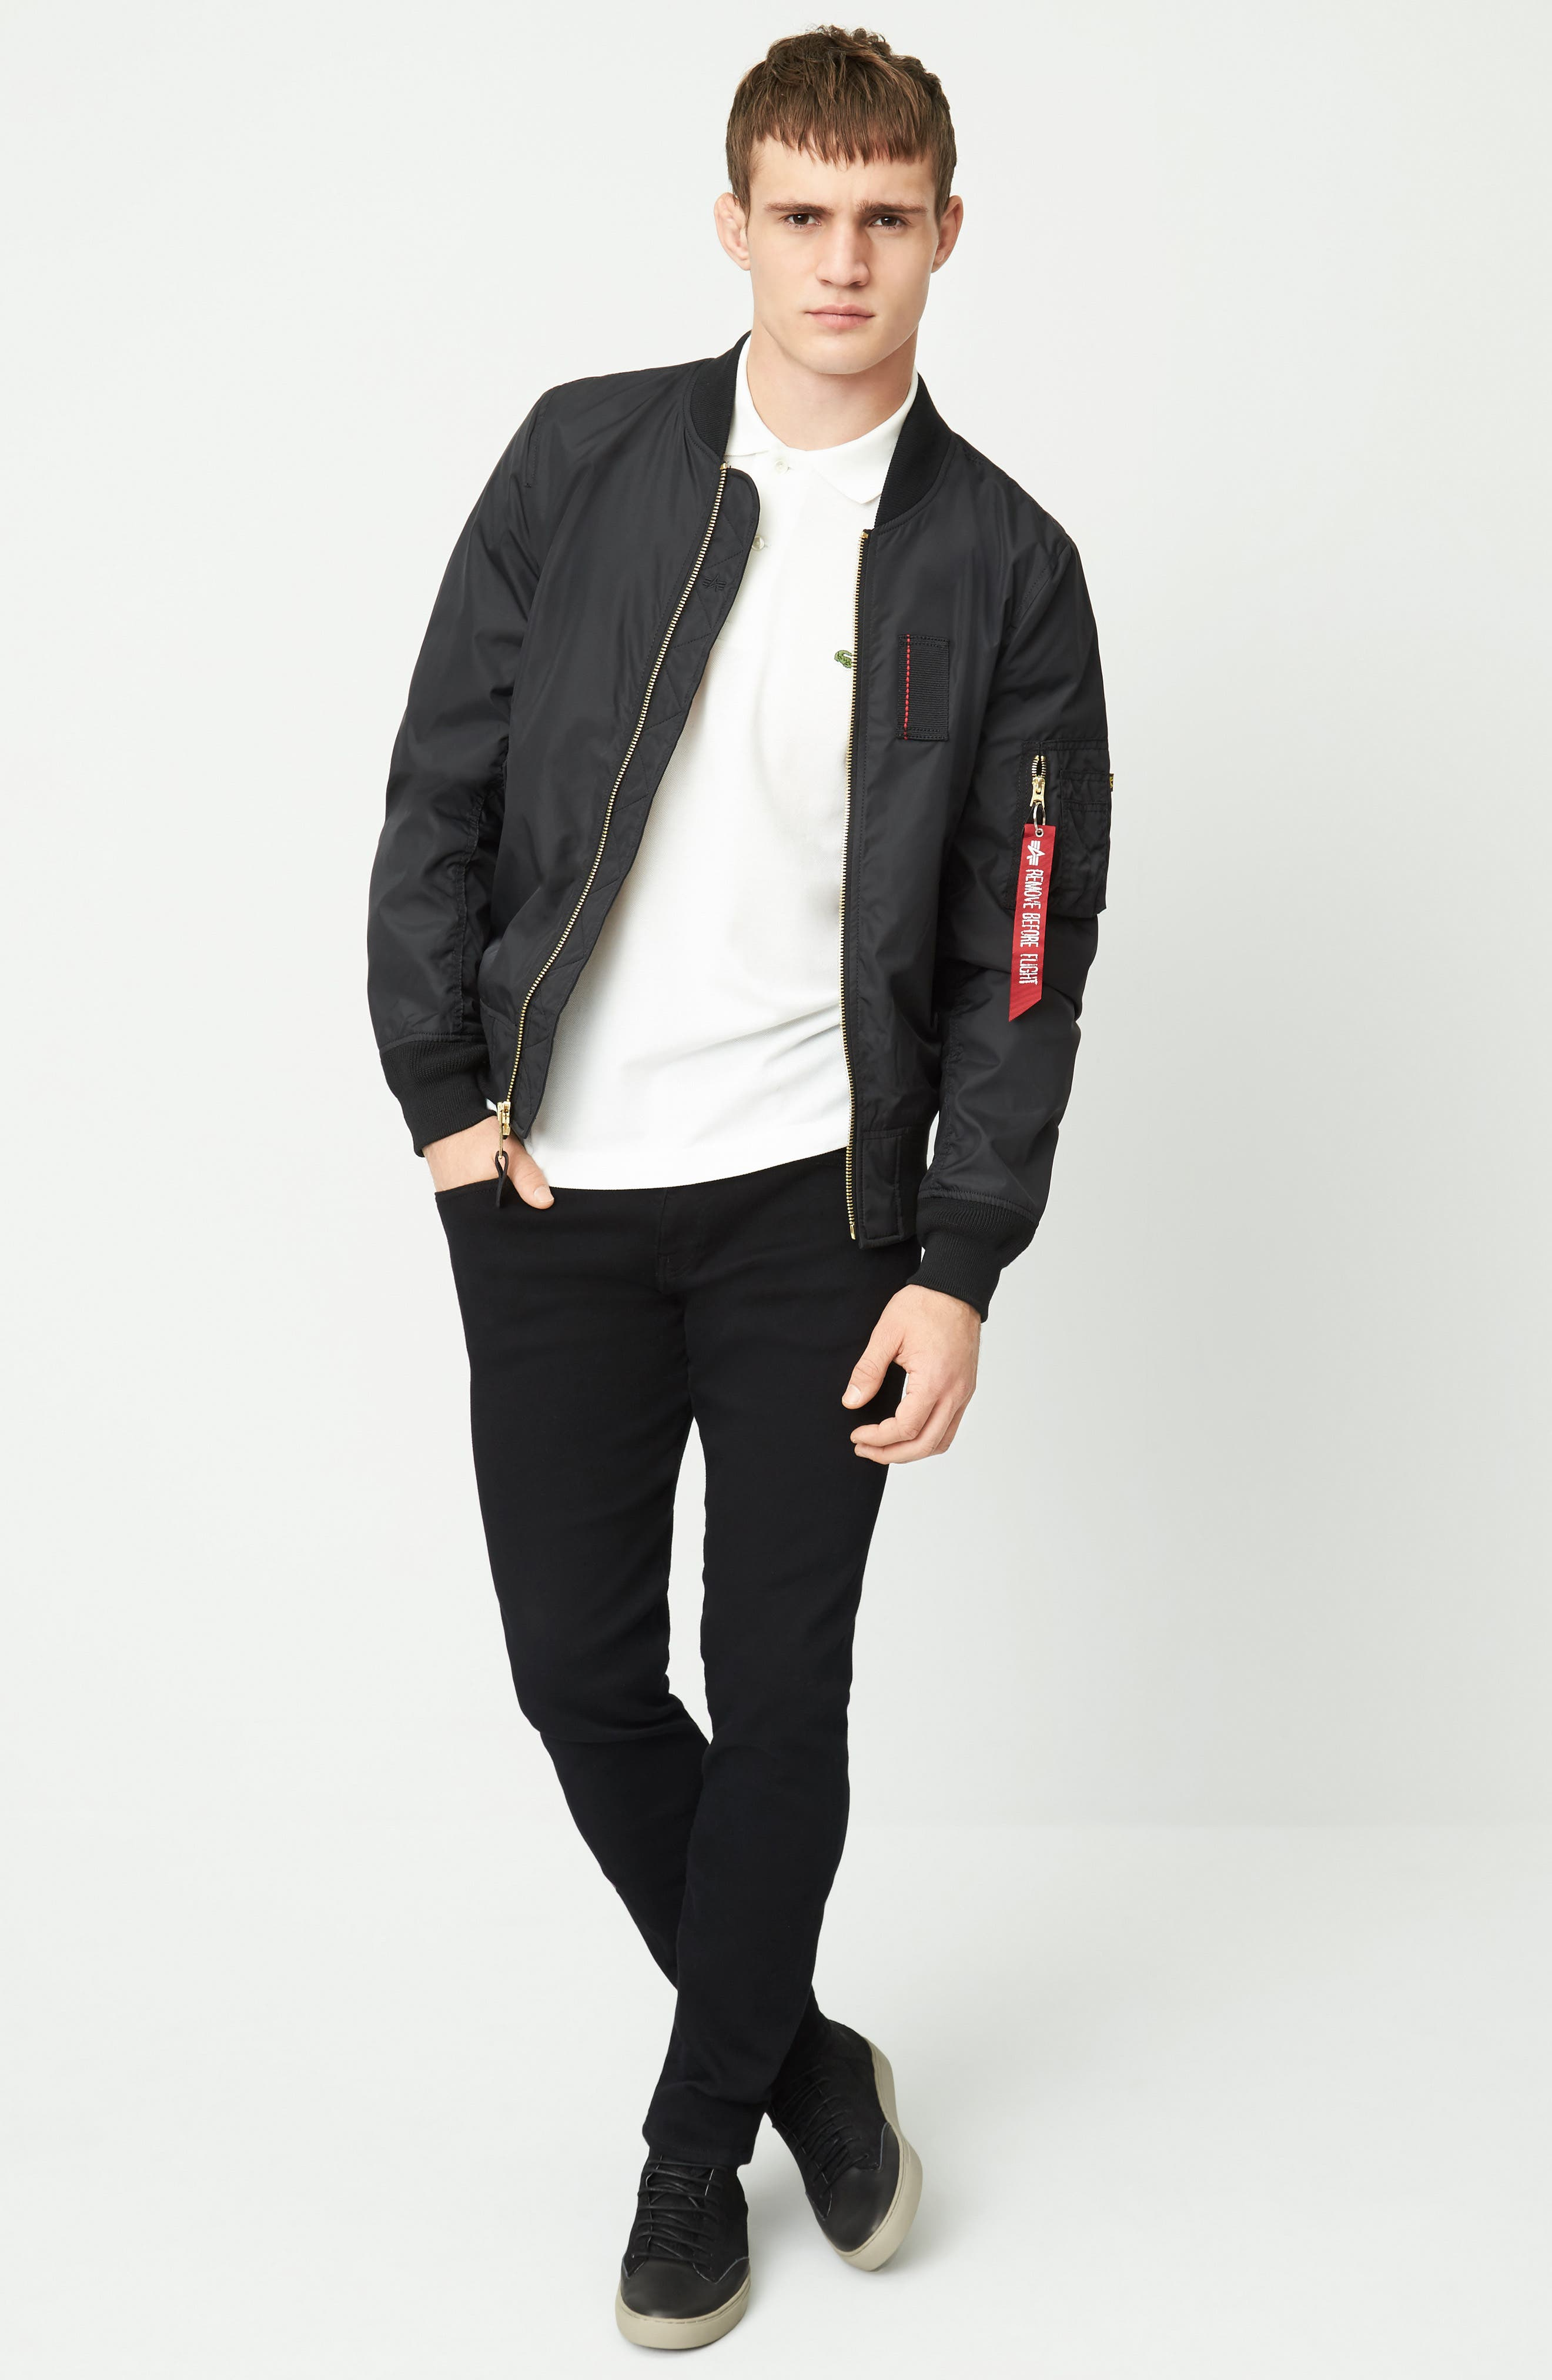 Alpha Industries Bomber Jacket, Lacoste Polo & Mavi Jeans Slim Fit Jeans Outfit with Accessories